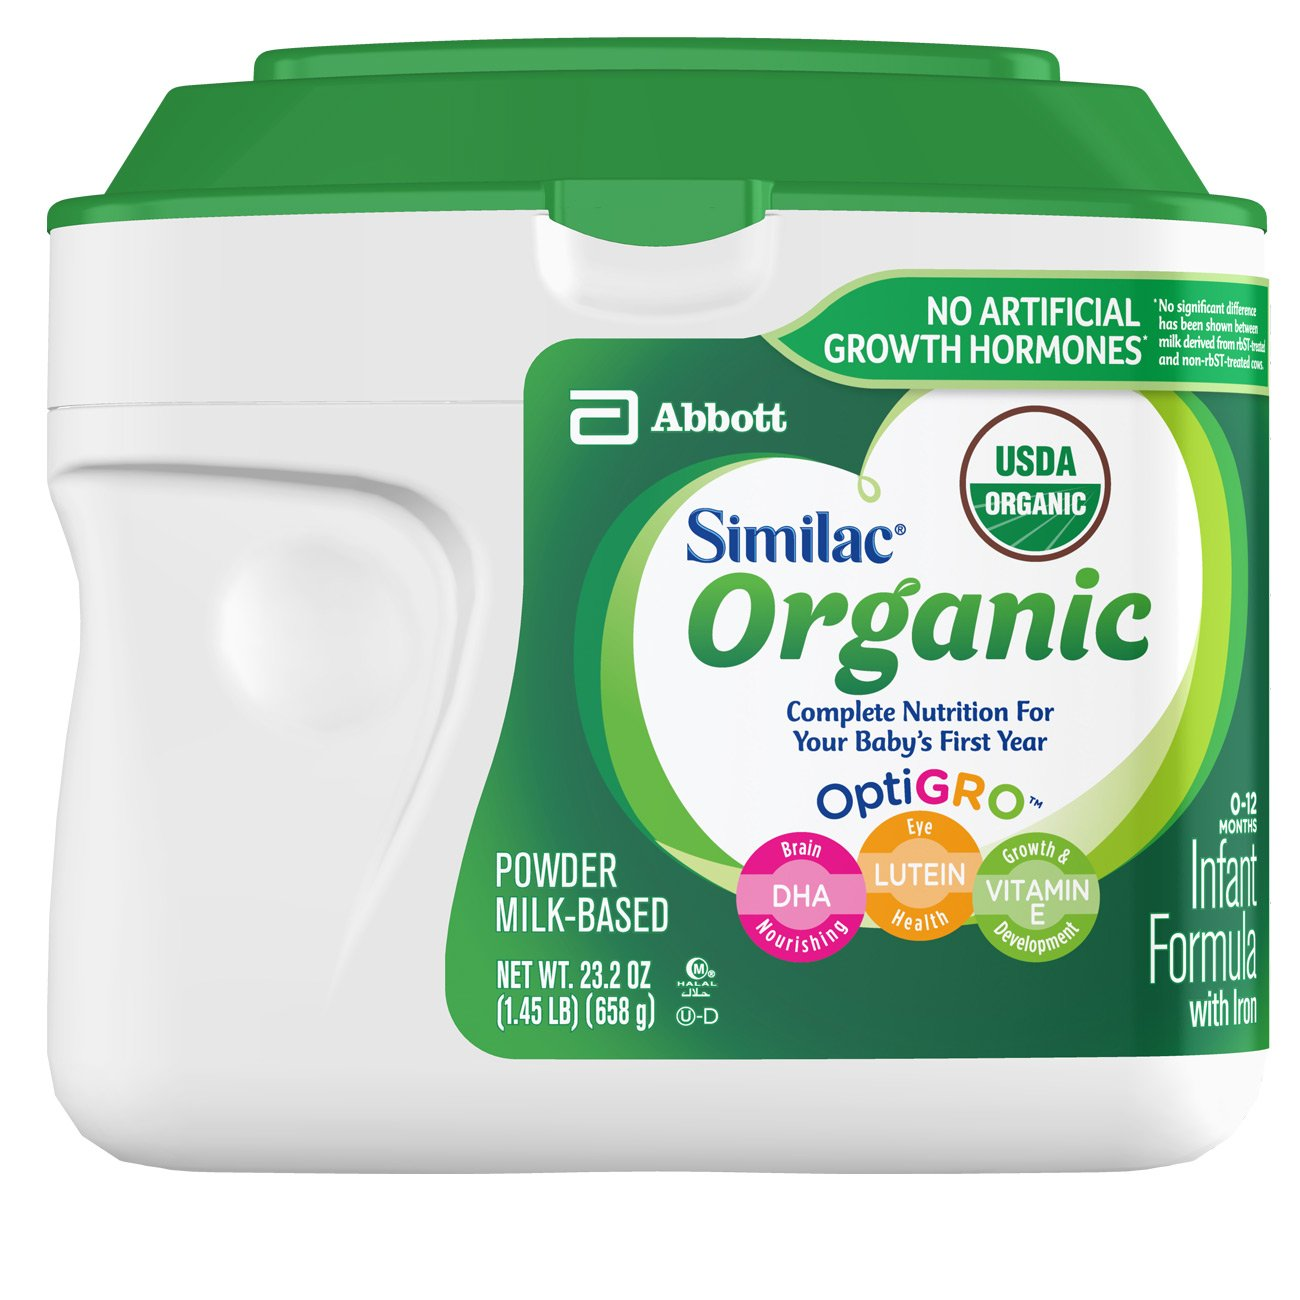 Similac Organic Non-GMO Infant Formula, Powder, Baby Formula, 23.2 ounces, 6 Count, (1-Month Supply) by Similac